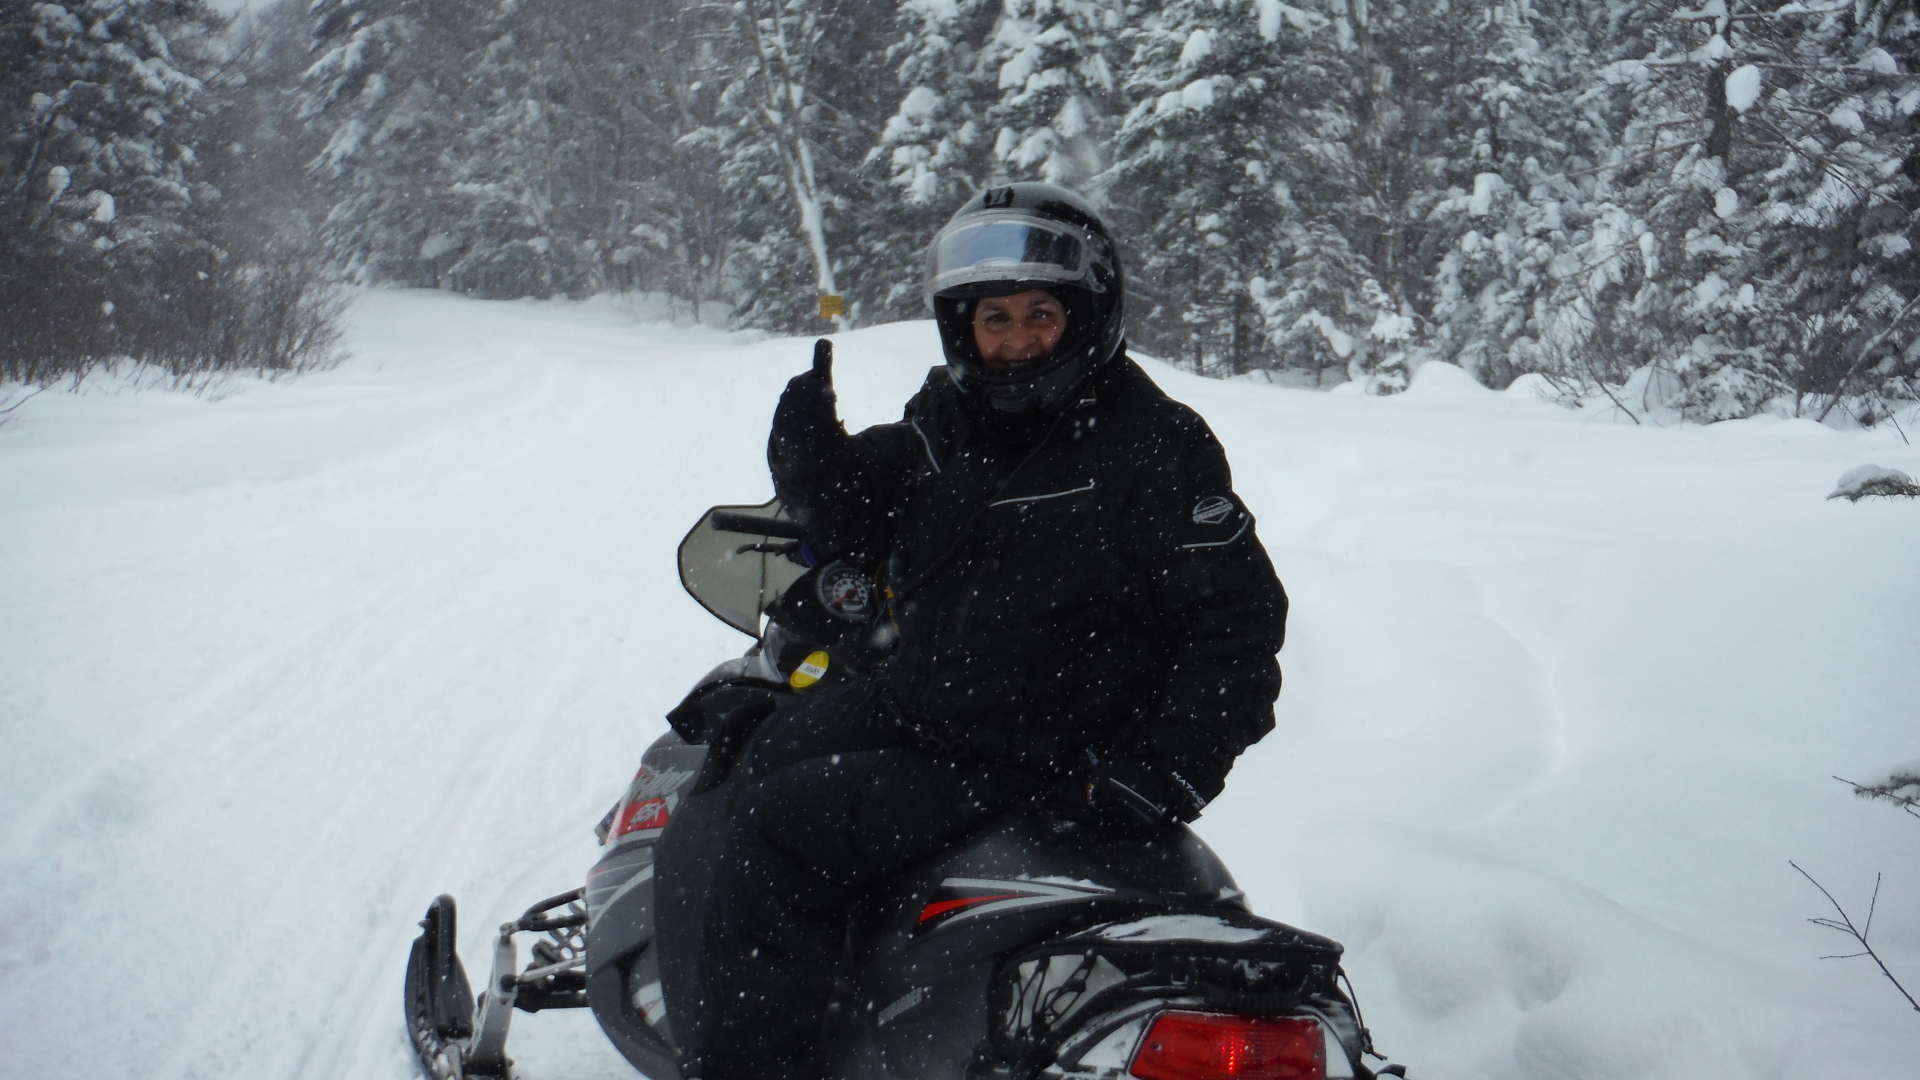 Debbie giving thumbs up on snowmobile